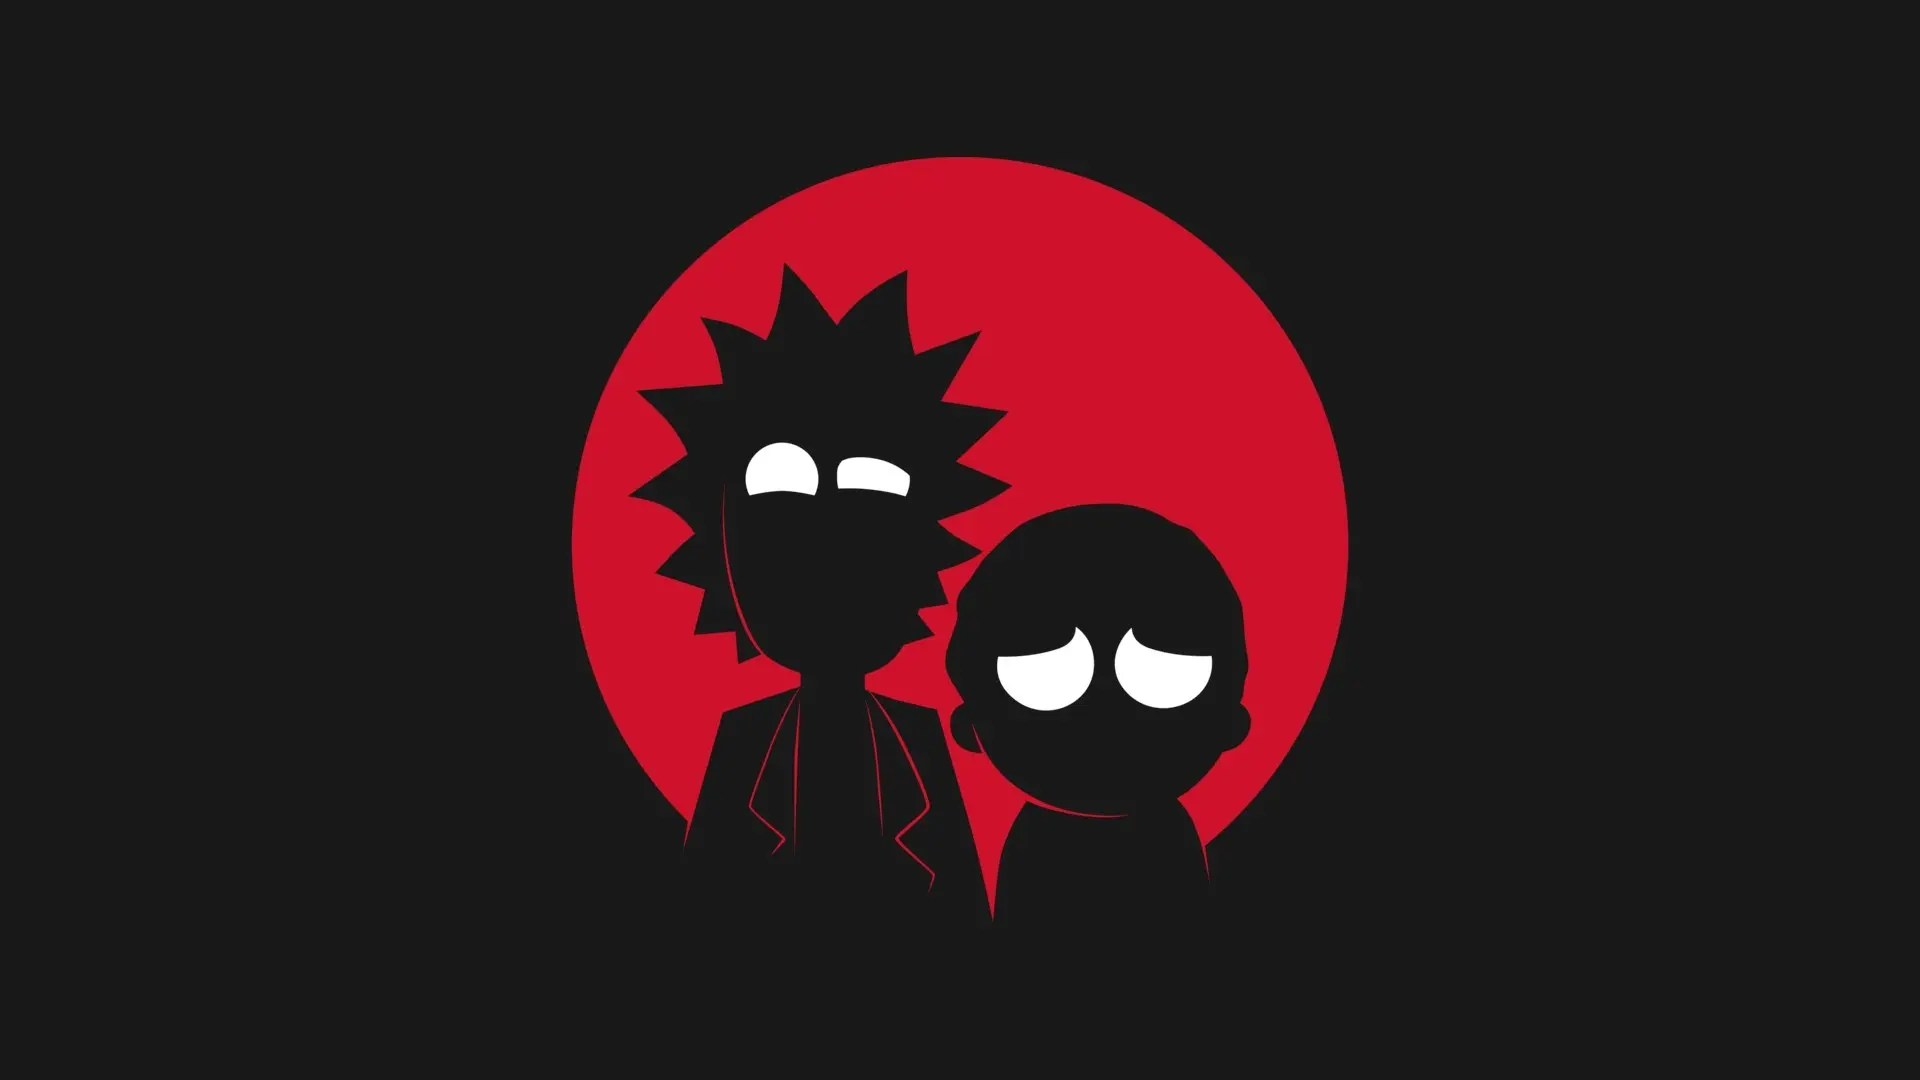 139887 Rick And Morty Wallpaper 1920x1080 1920x1080 For 4k